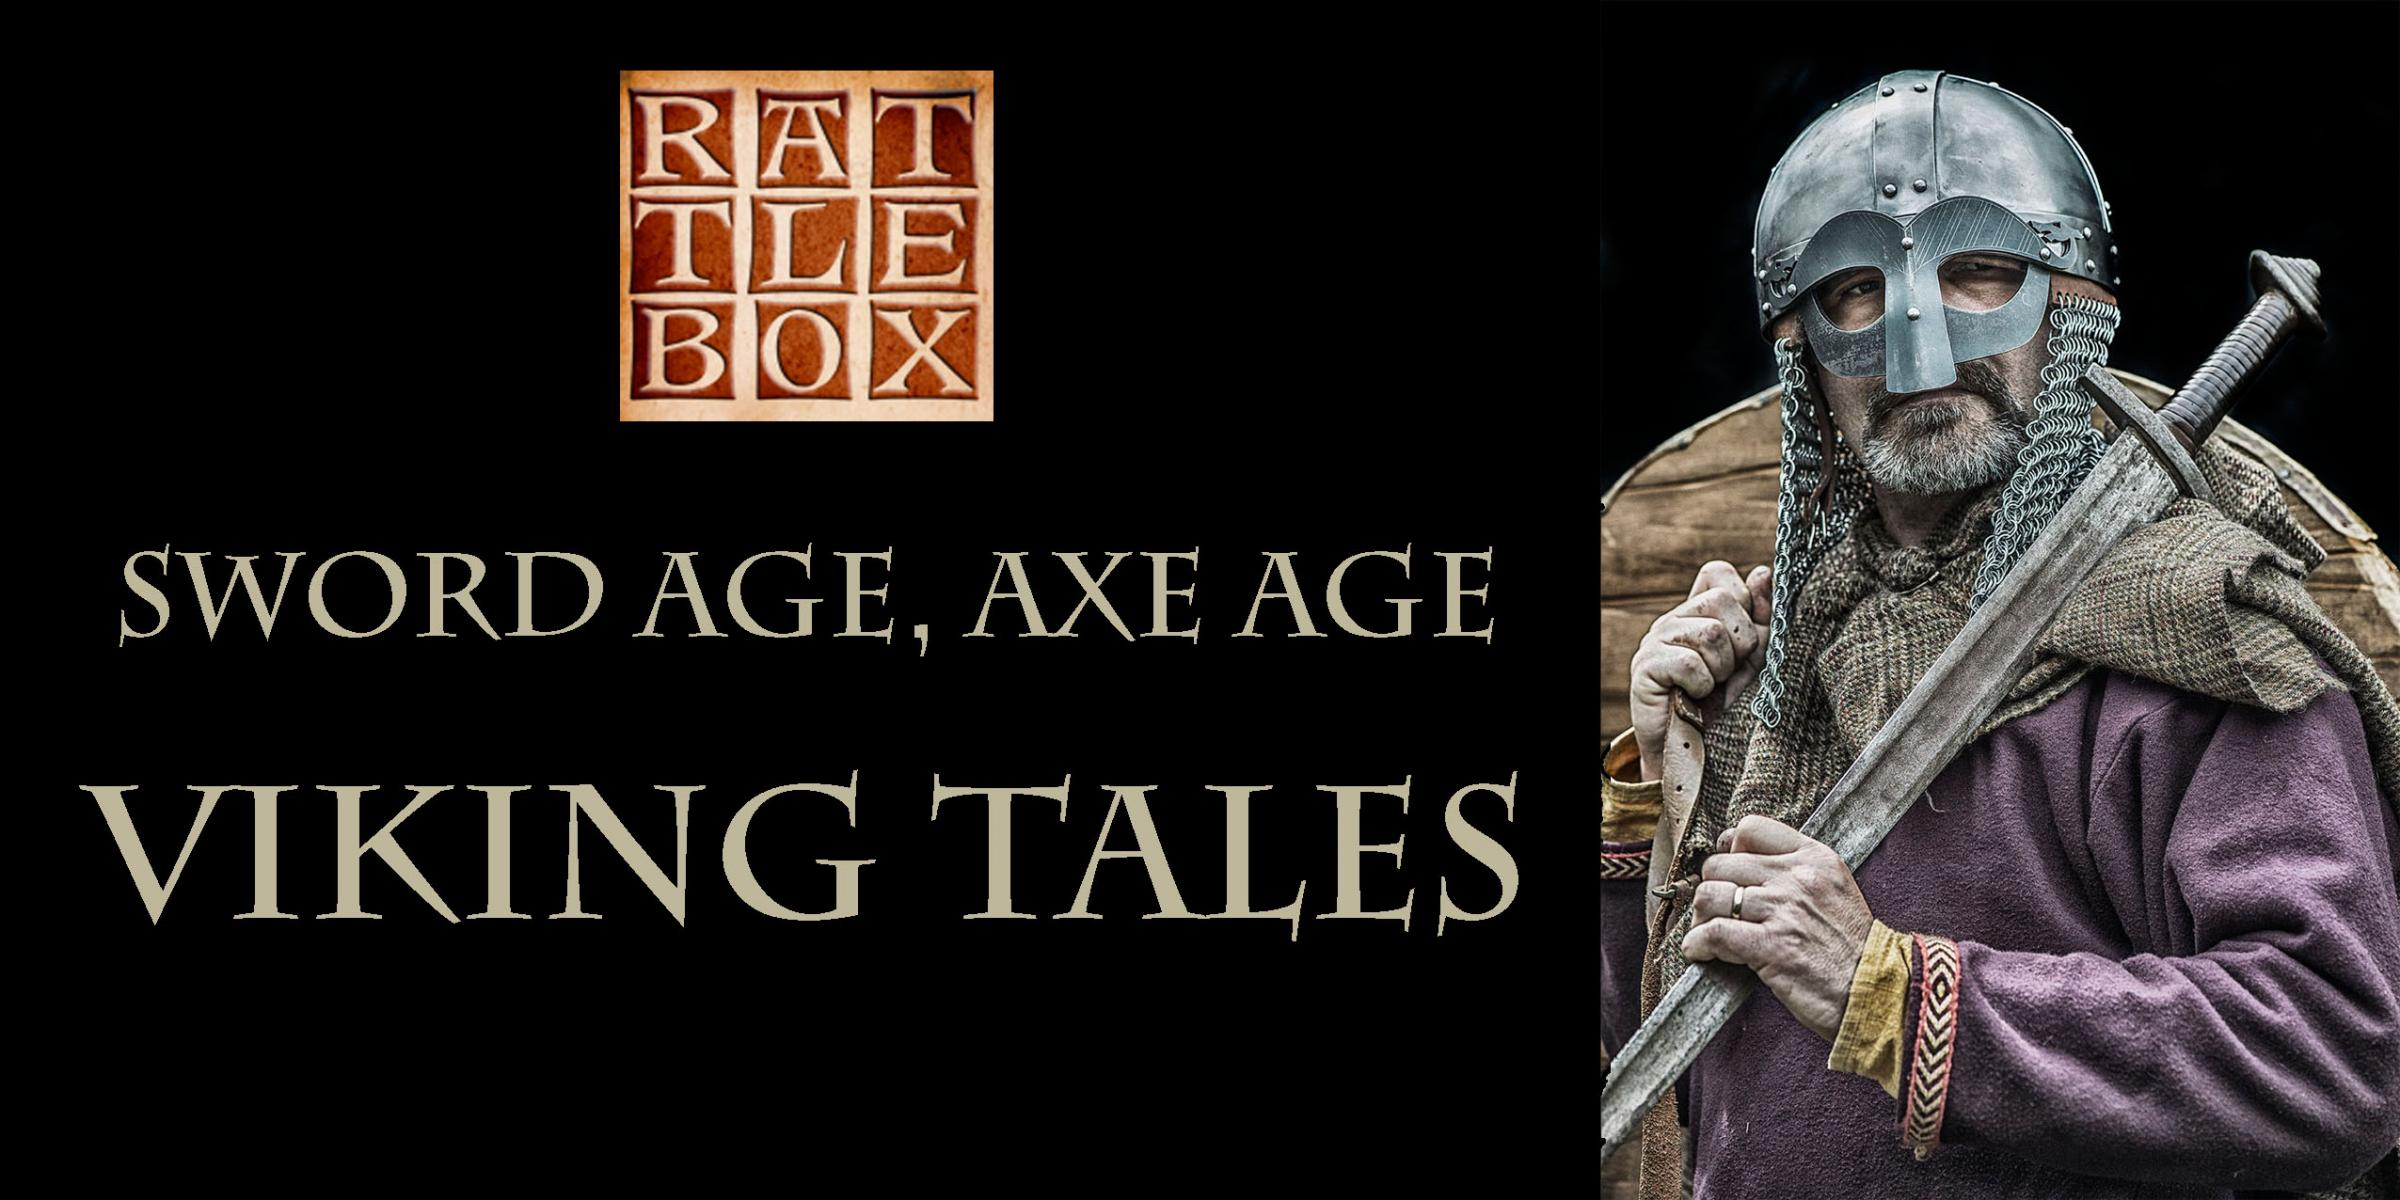 National Trust - 'Sword Age, Axe Age' Viking Stories